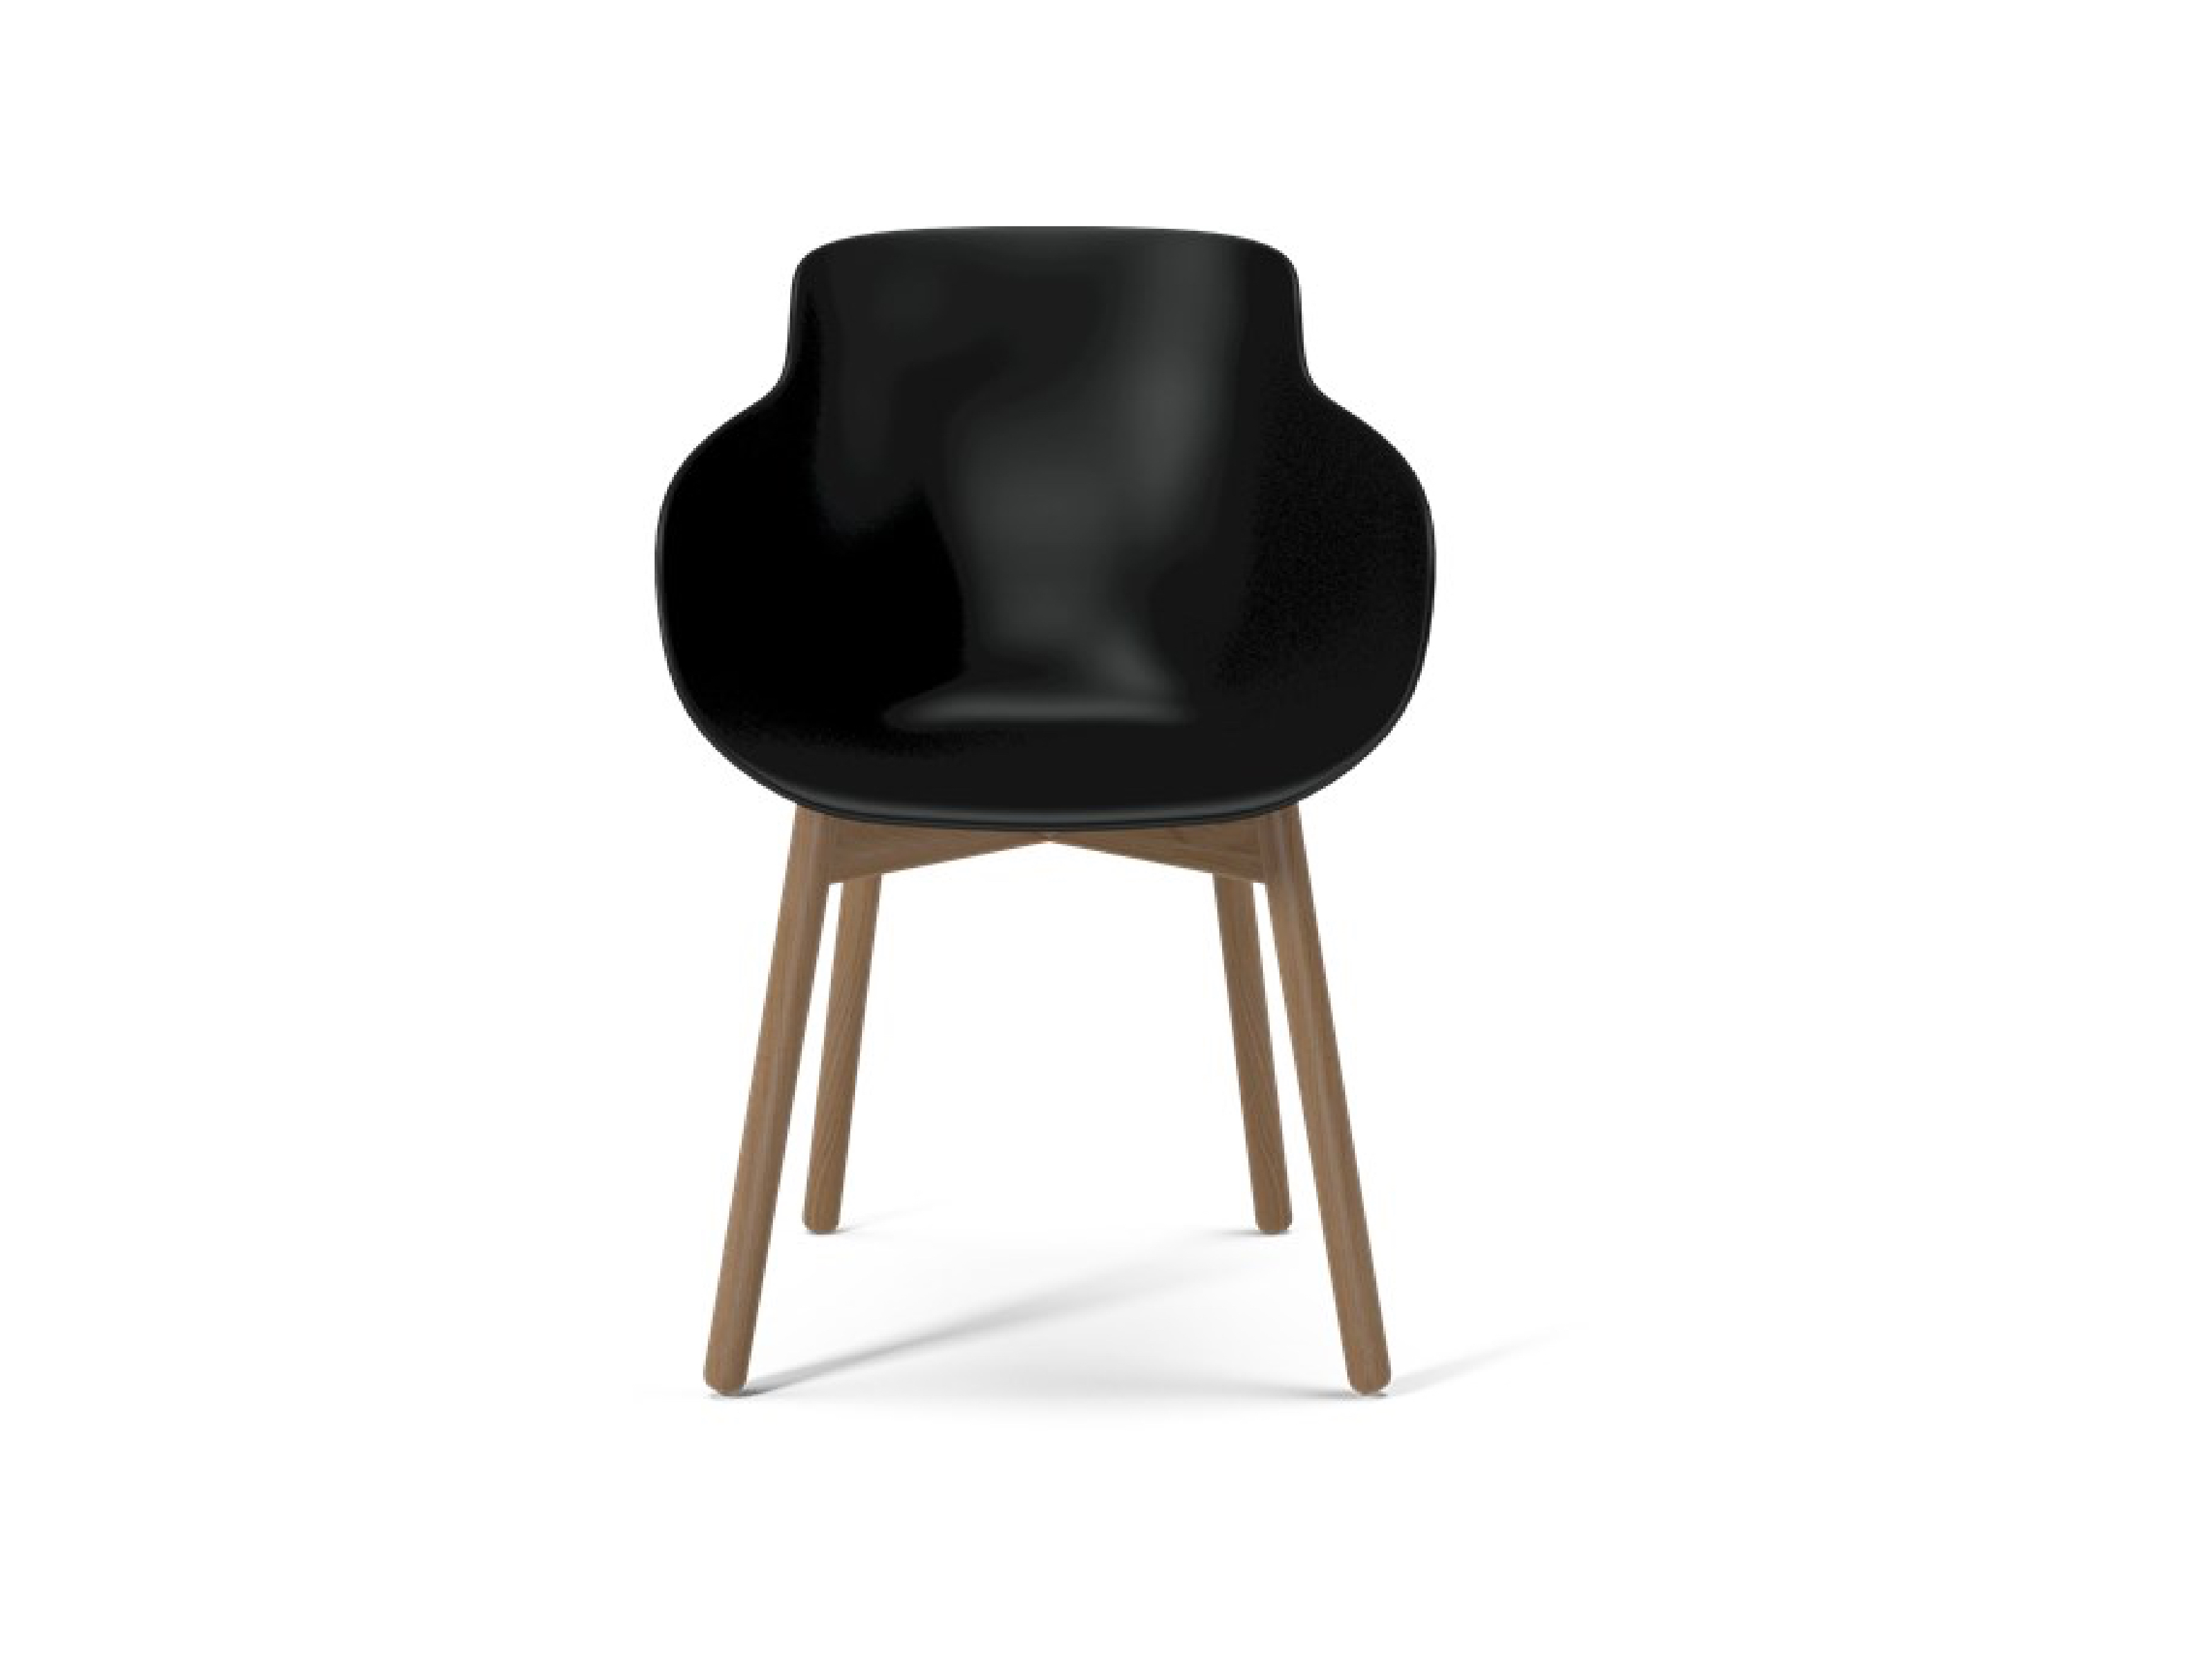 HUG Dining Chair by Bolia  Steelcase